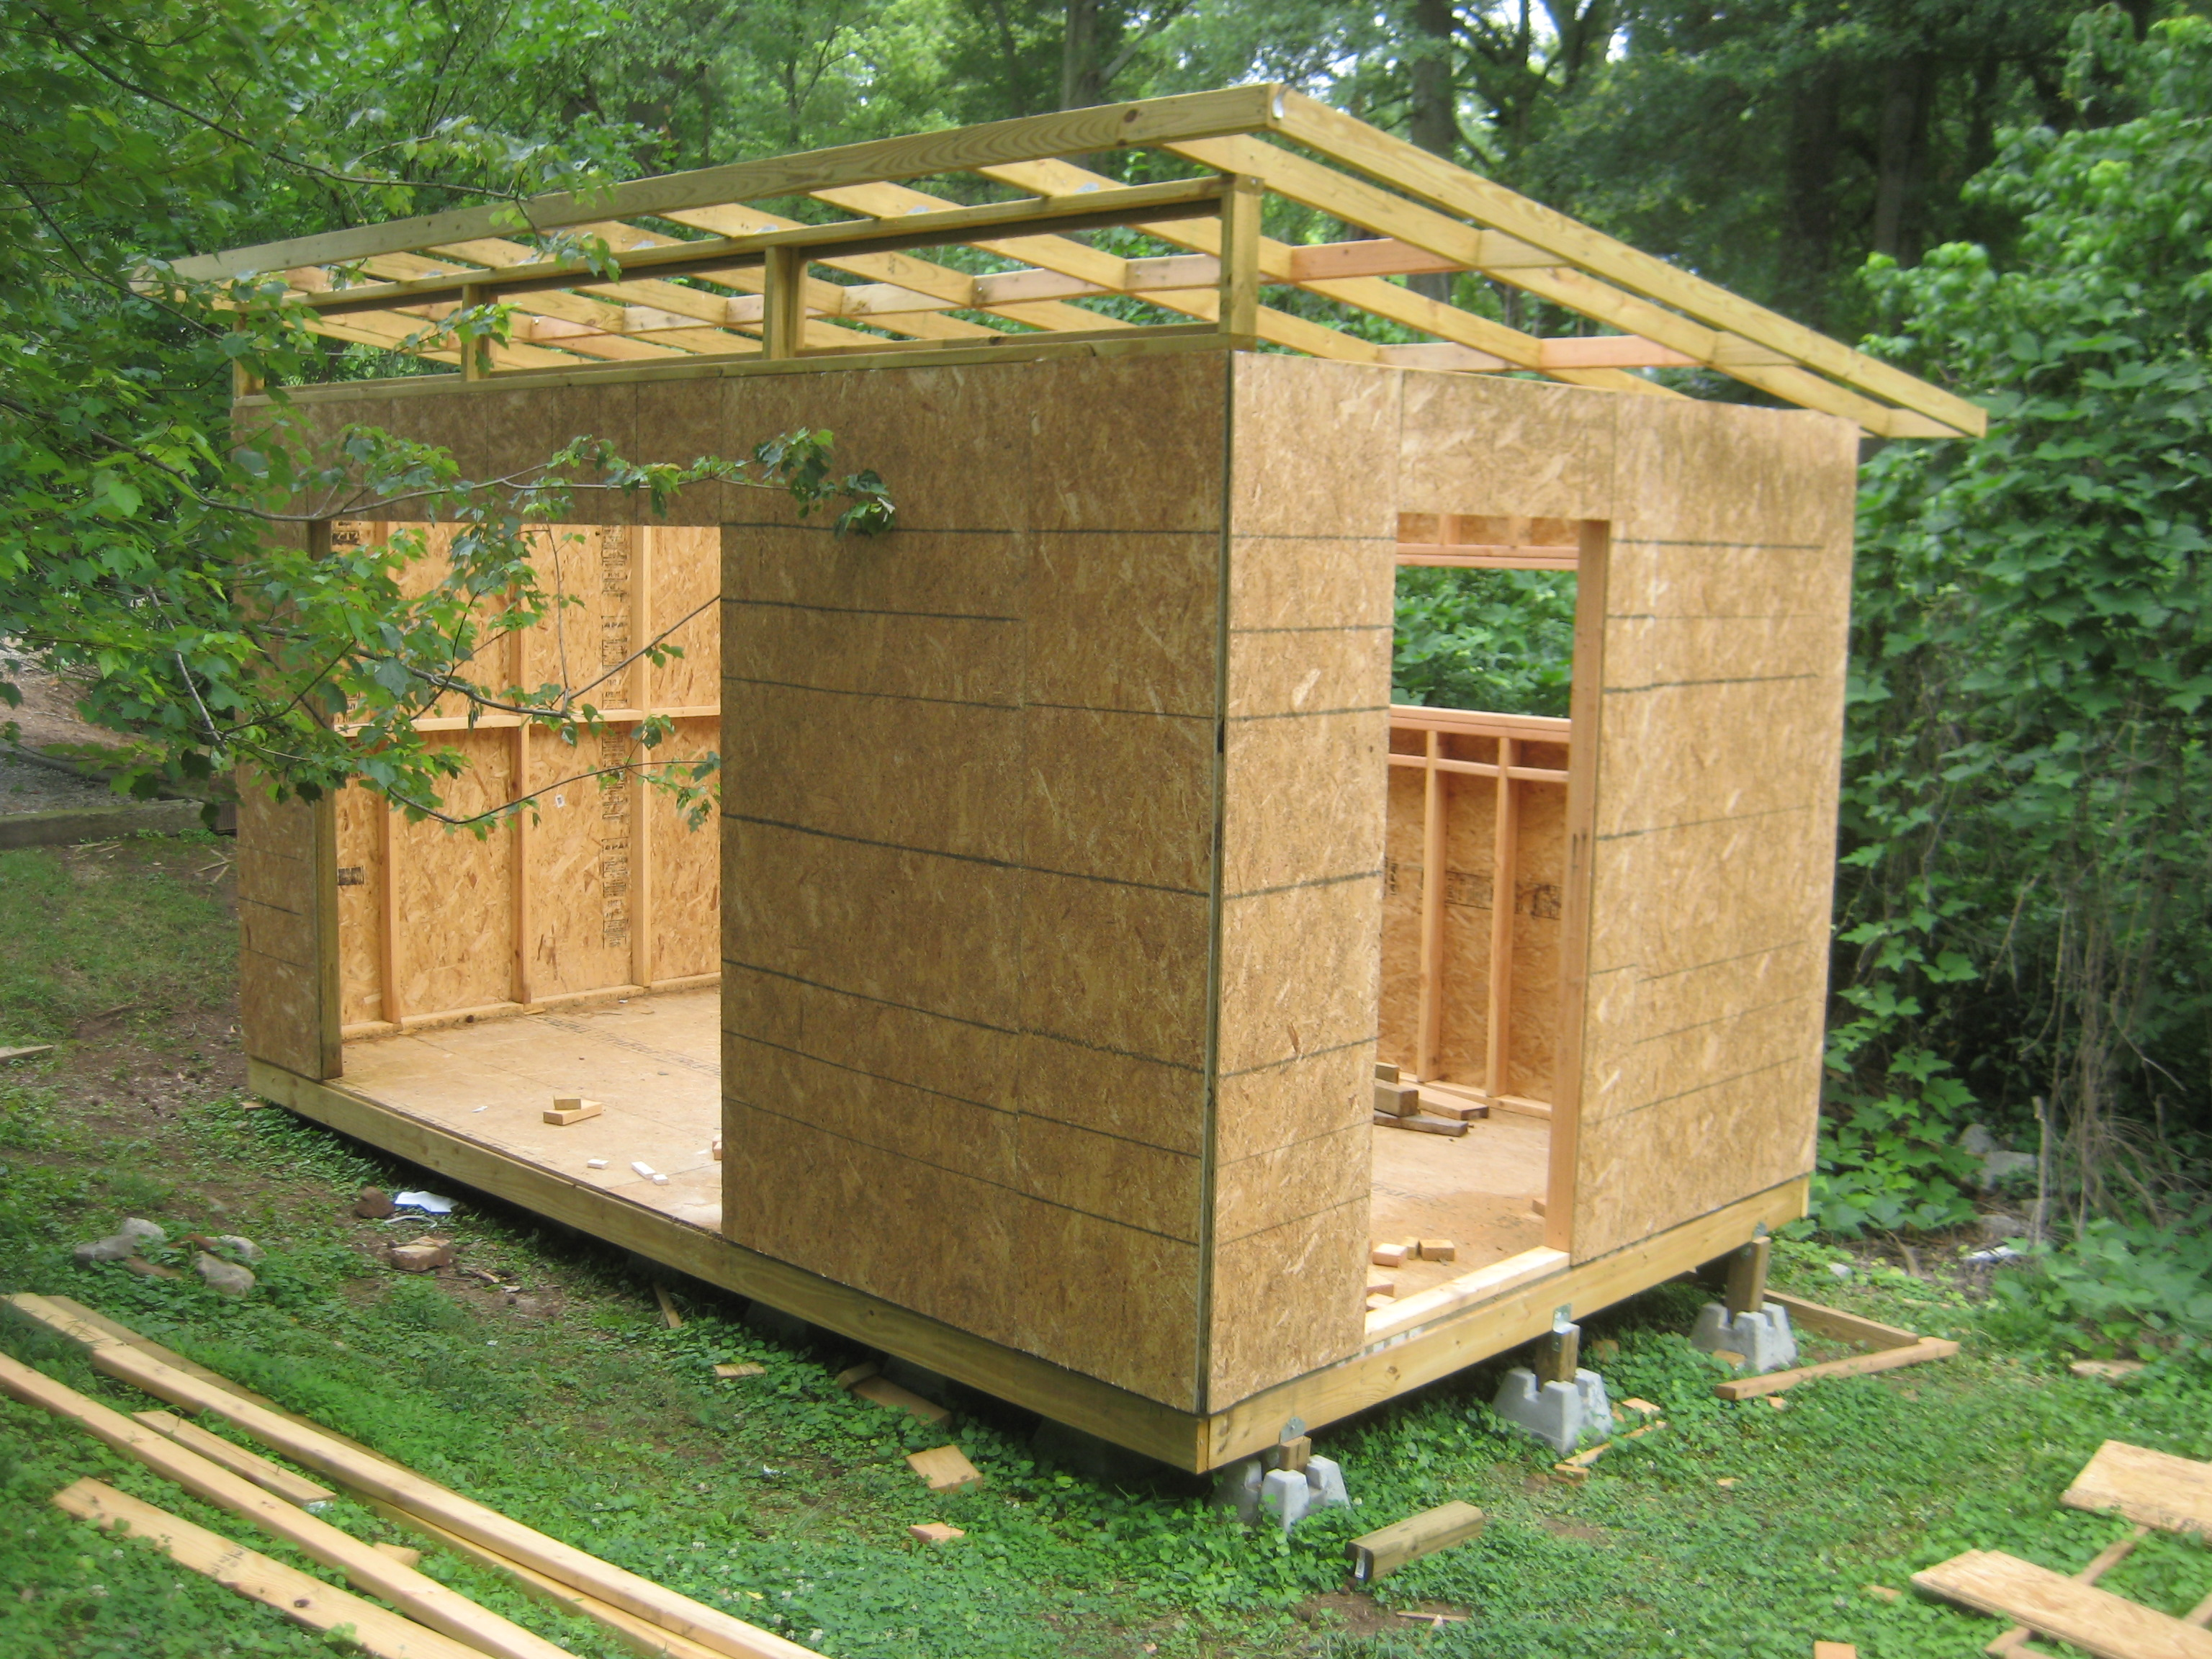 Diy modern shed project diyatlantamodern for Build your own barn online